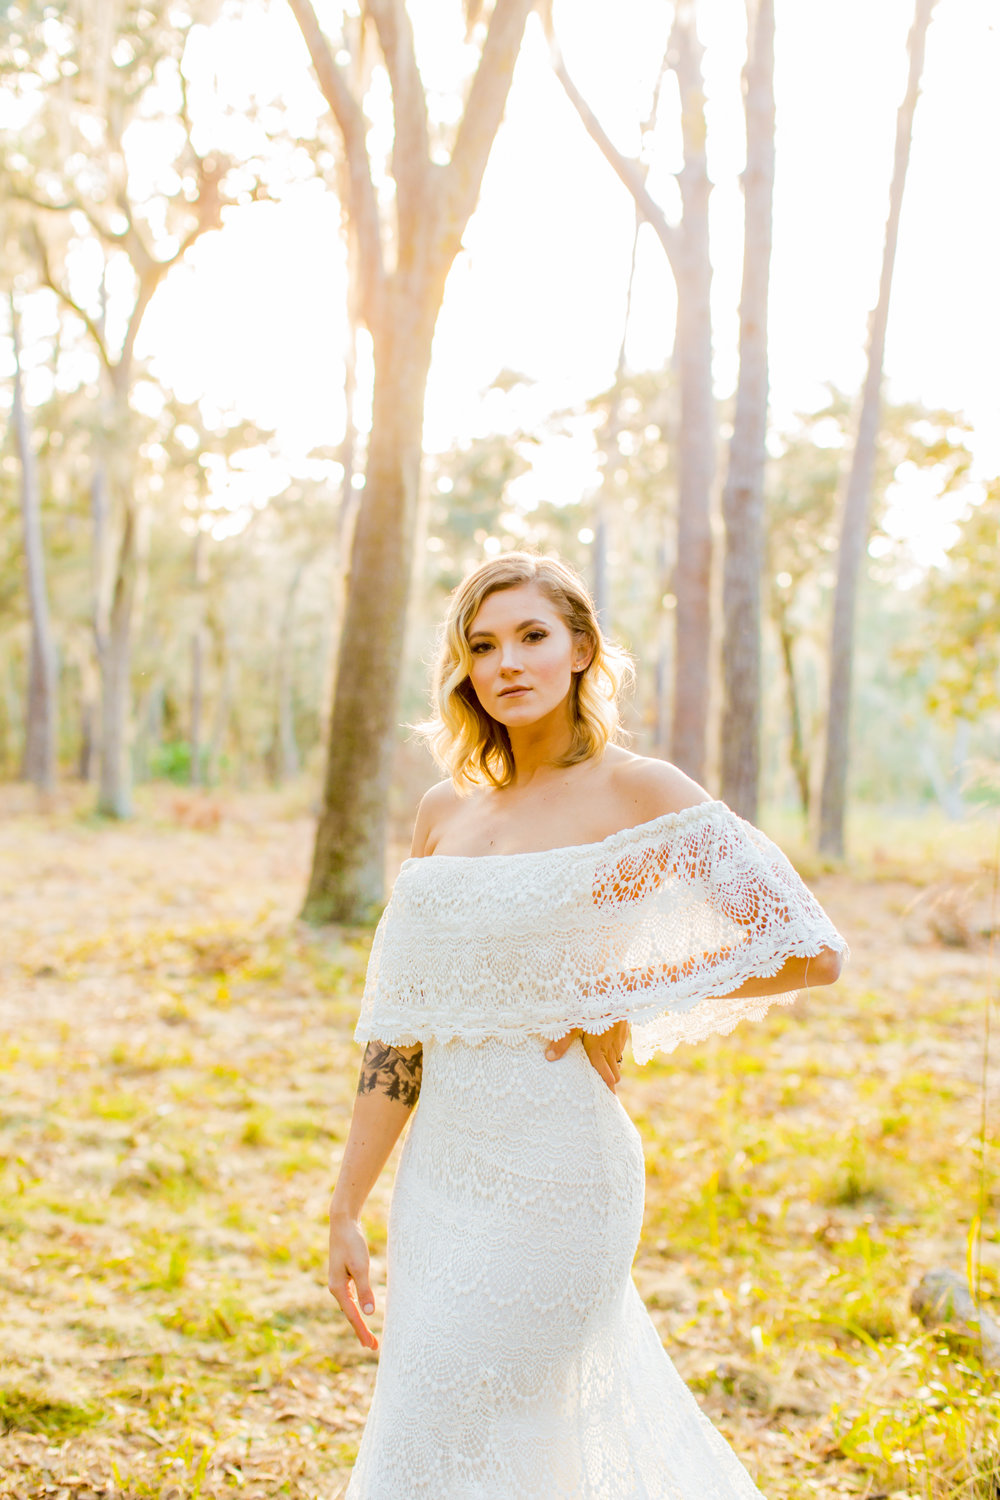 camille-by-daughters-of-simone-ivory-and-beau-savannah-bridal-boutique-savannah-wedding-dresses-boho-bride-bohemian-wedding-dresses.jpg